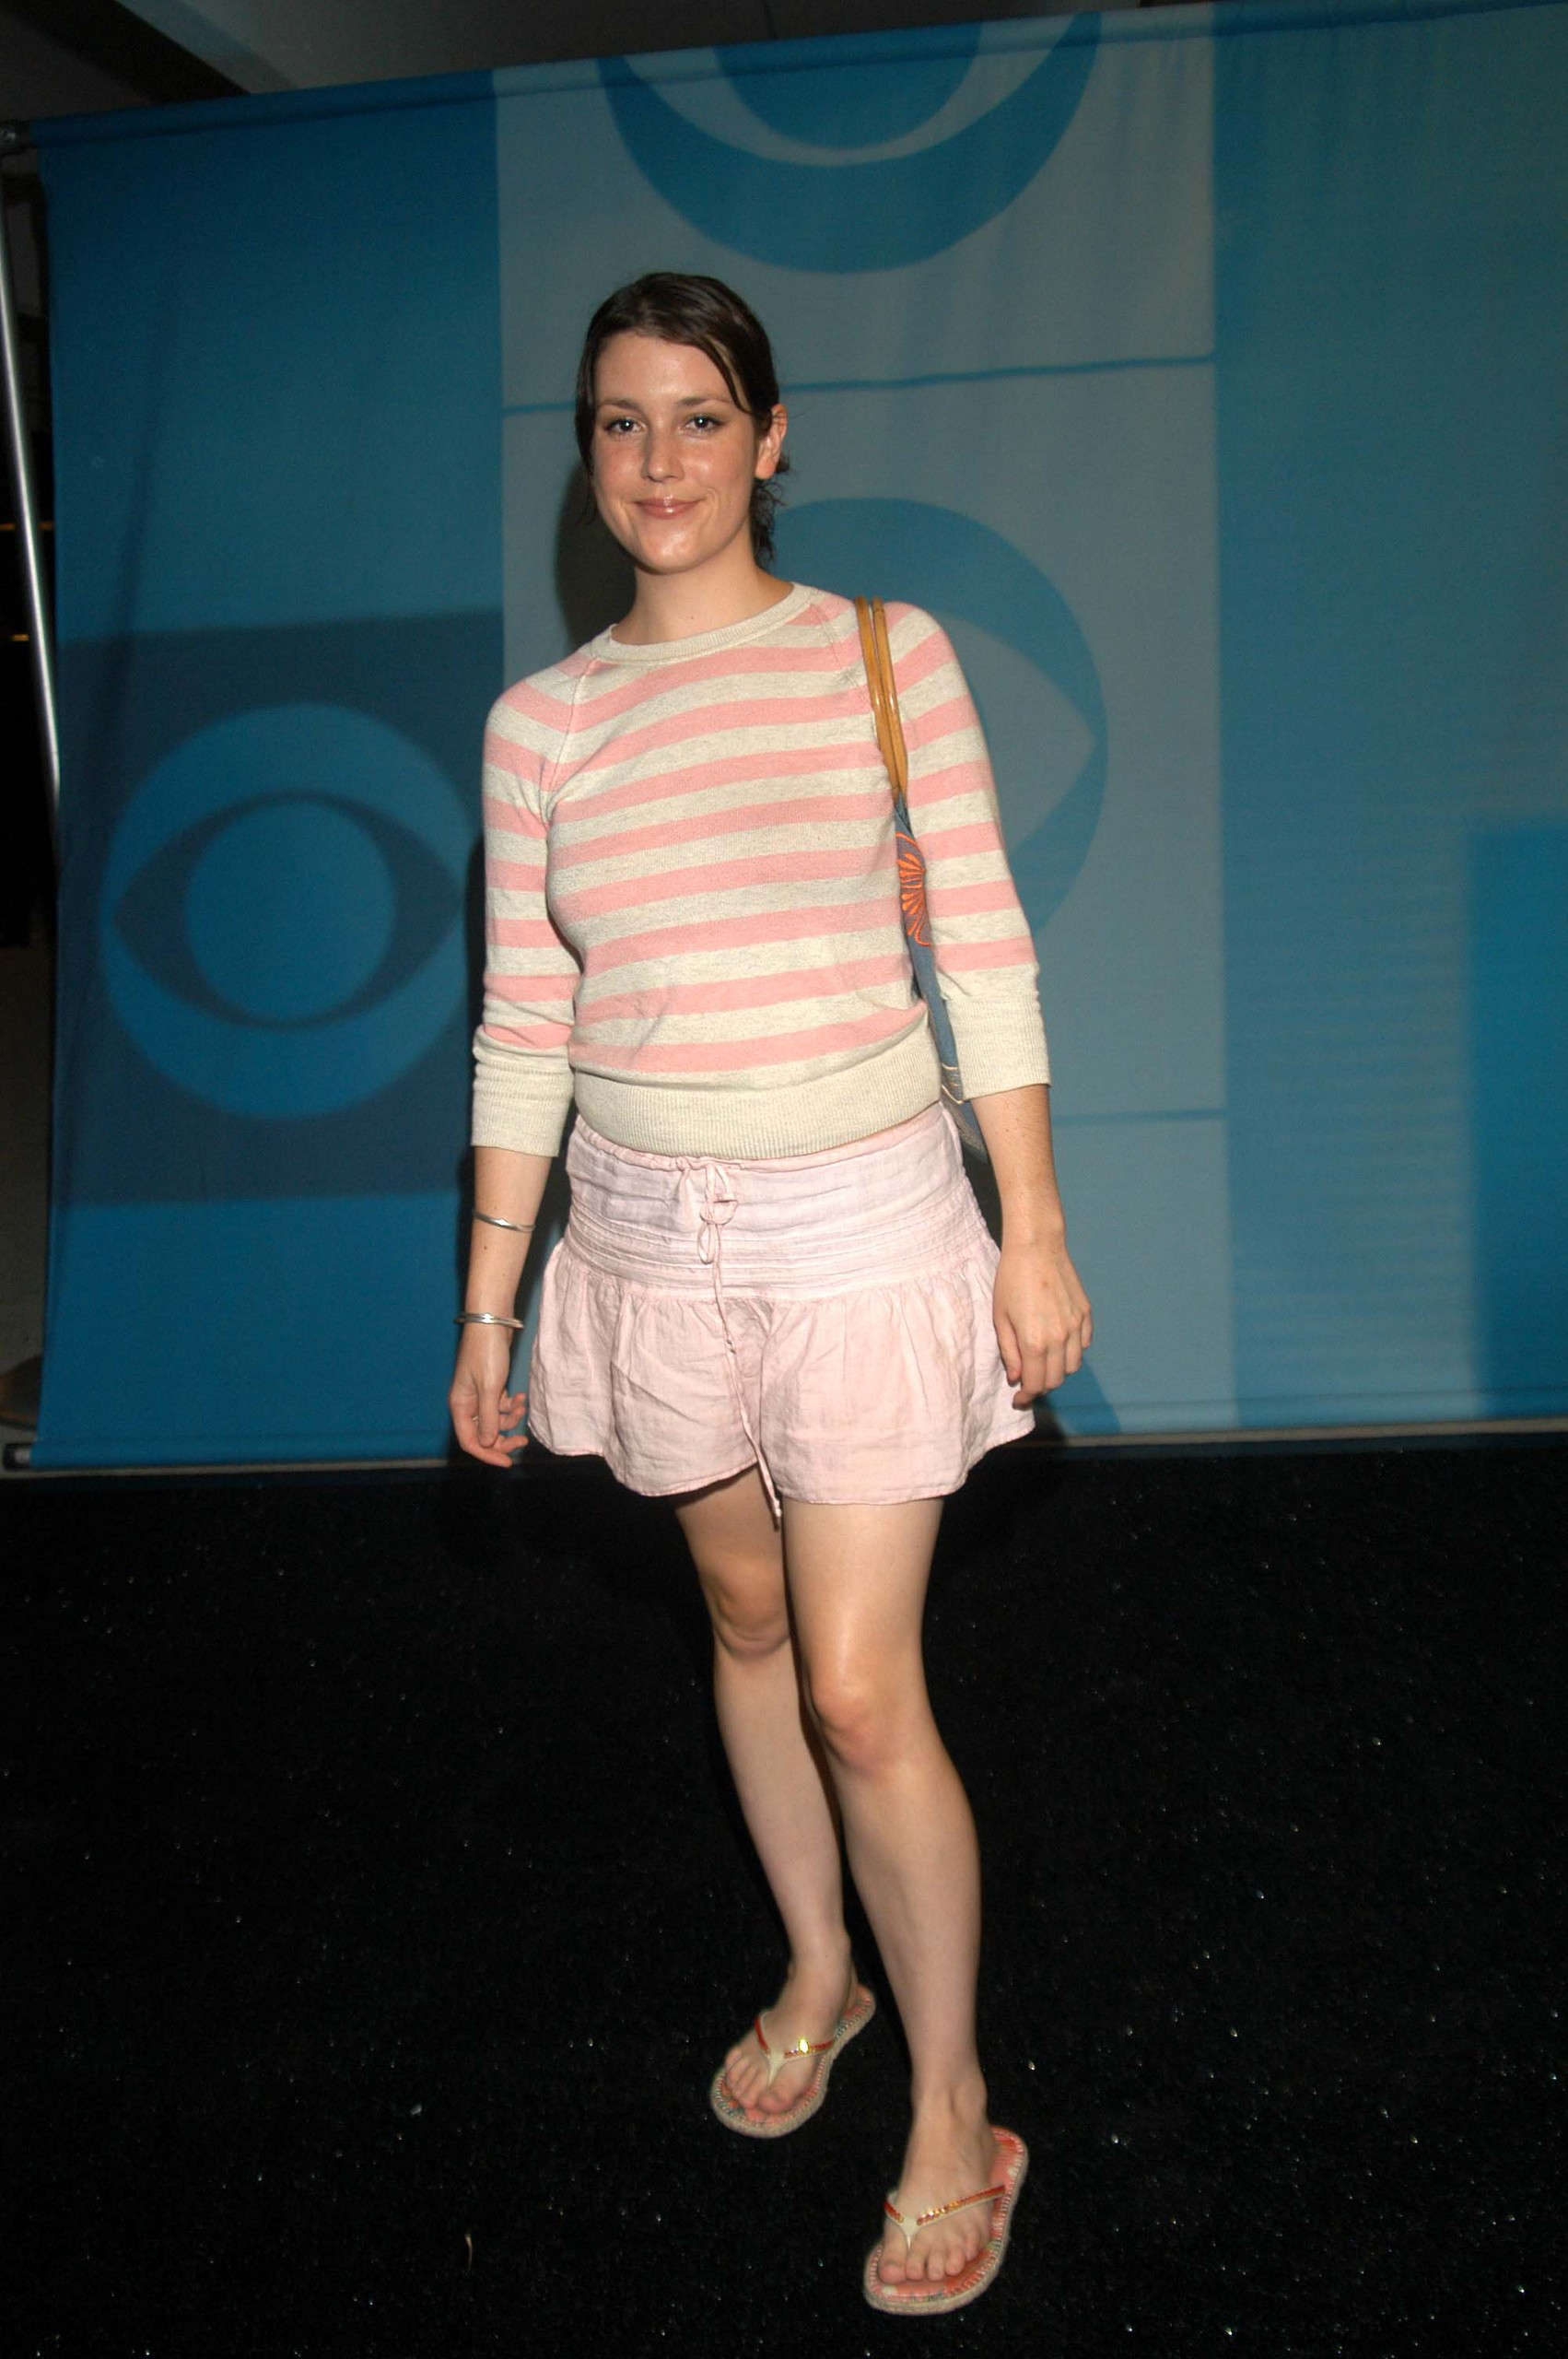 Photos Melanie Lynskey naked (19 foto and video), Tits, Fappening, Selfie, underwear 2017